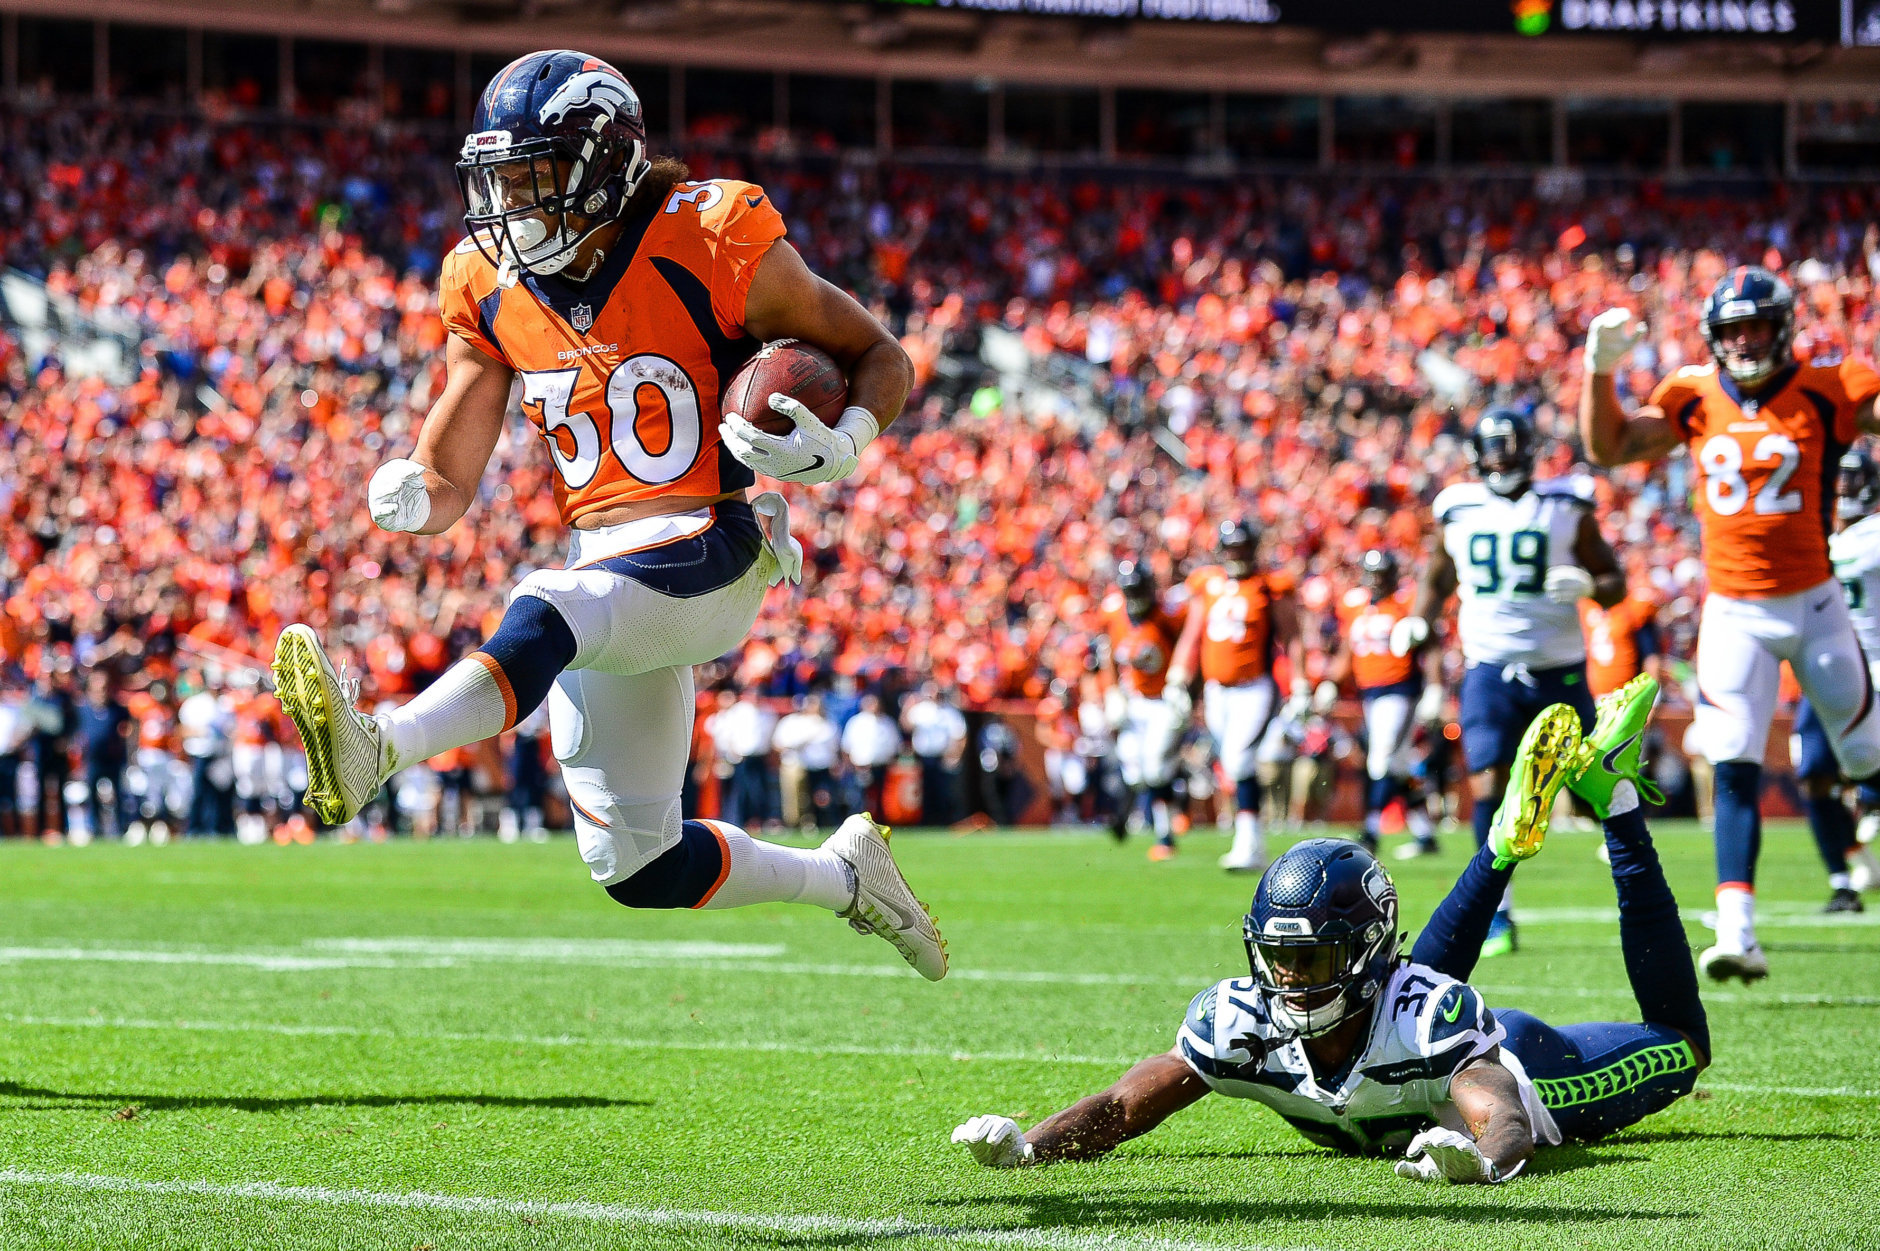 DENVER, CO - SEPTEMBER 9:  Running back Phillip Lindsay #30 of the Denver Broncos scores a first quarter touchdown on a reception as cornerback Tre Flowers #37 of the Seattle Seahawks falls to the ground during a game at Broncos Stadium at Mile High on September 9, 2018 in Denver, Colorado. (Photo by Dustin Bradford/Getty Images)